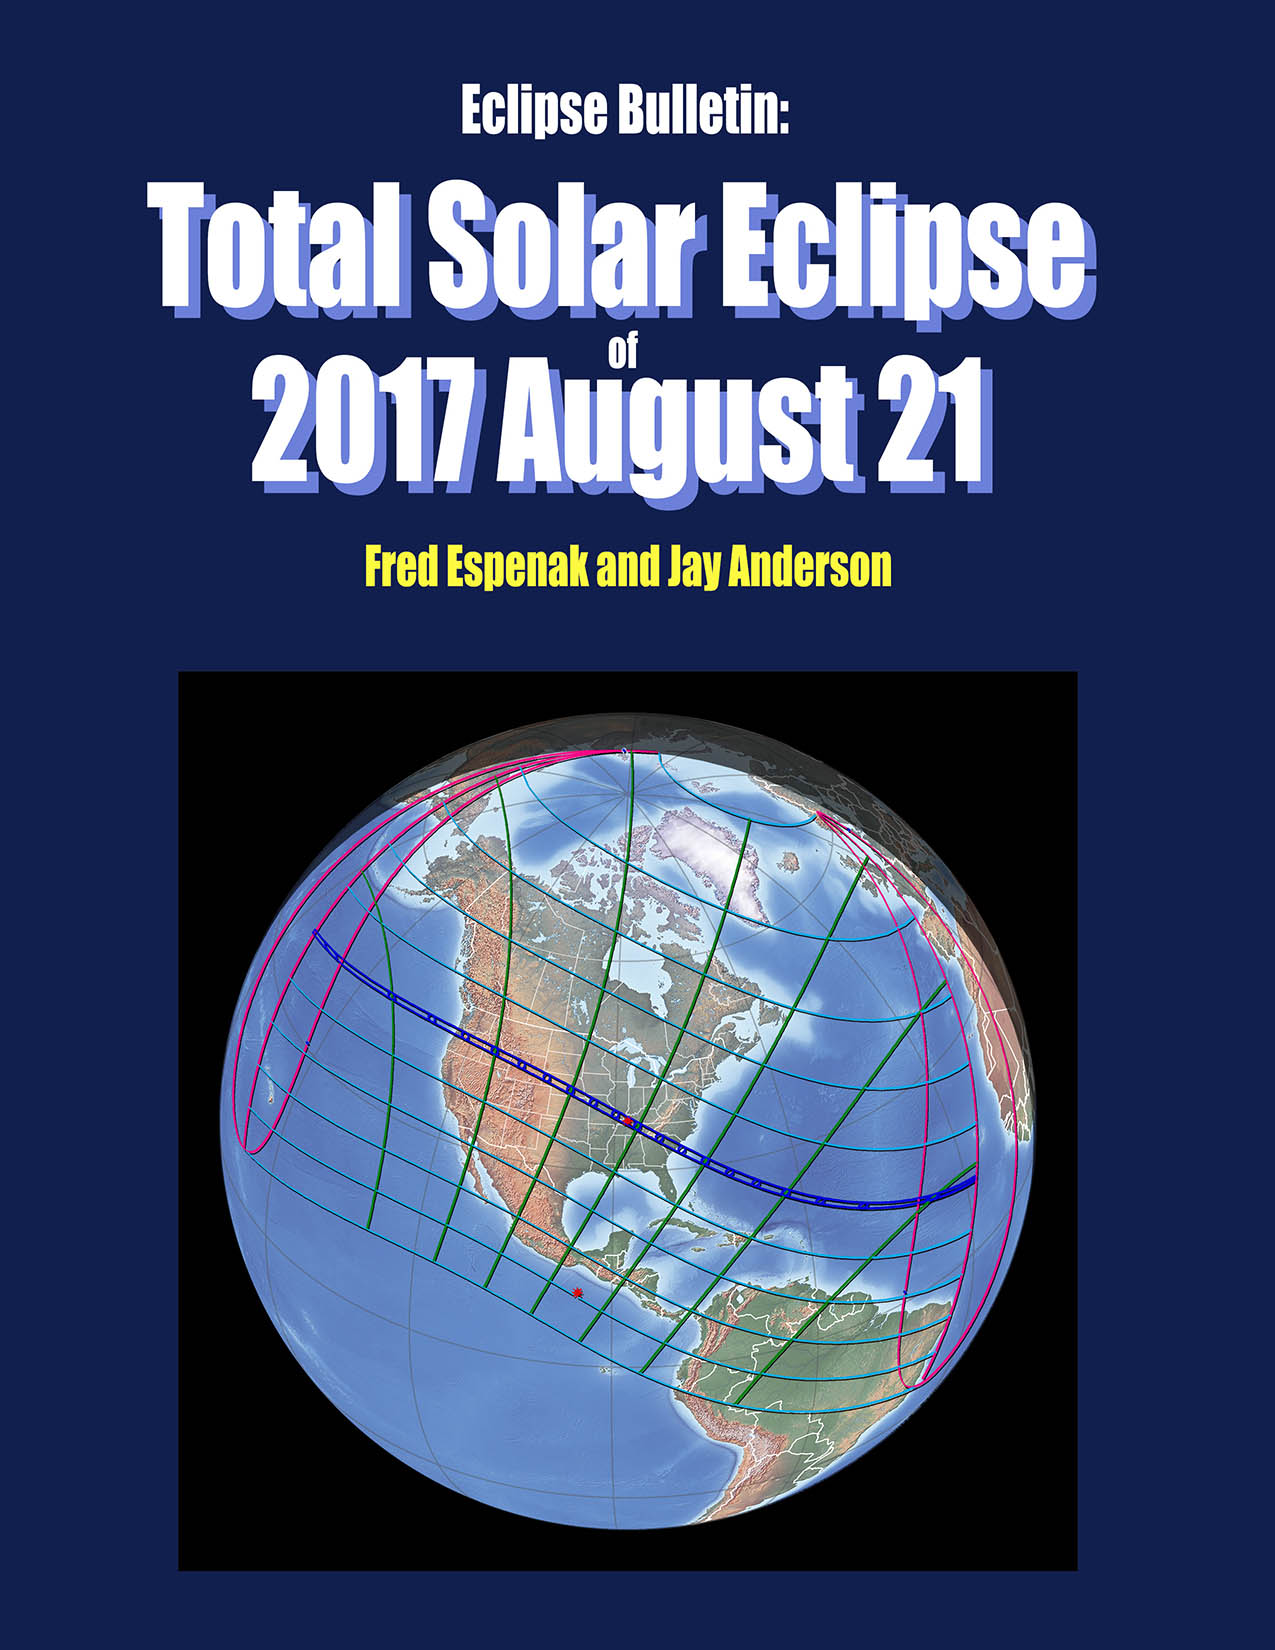 Total Solar Eclipse 2017 World Map.Solar Eclipses Portal To The Universe